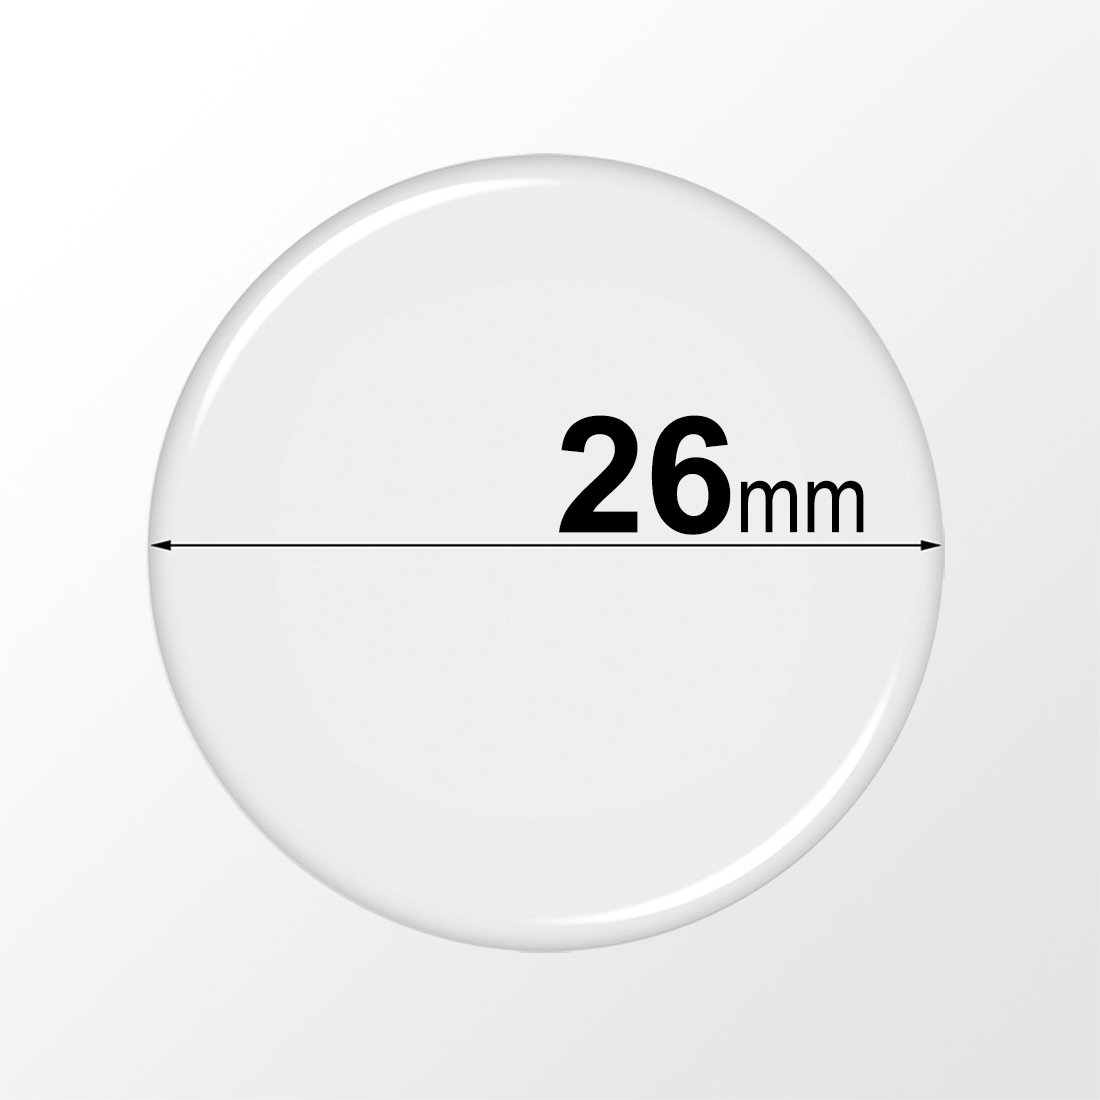 500 Pcs. Dia: 26mm Clear Round Epoxy Stickers - FREE SHIPPING